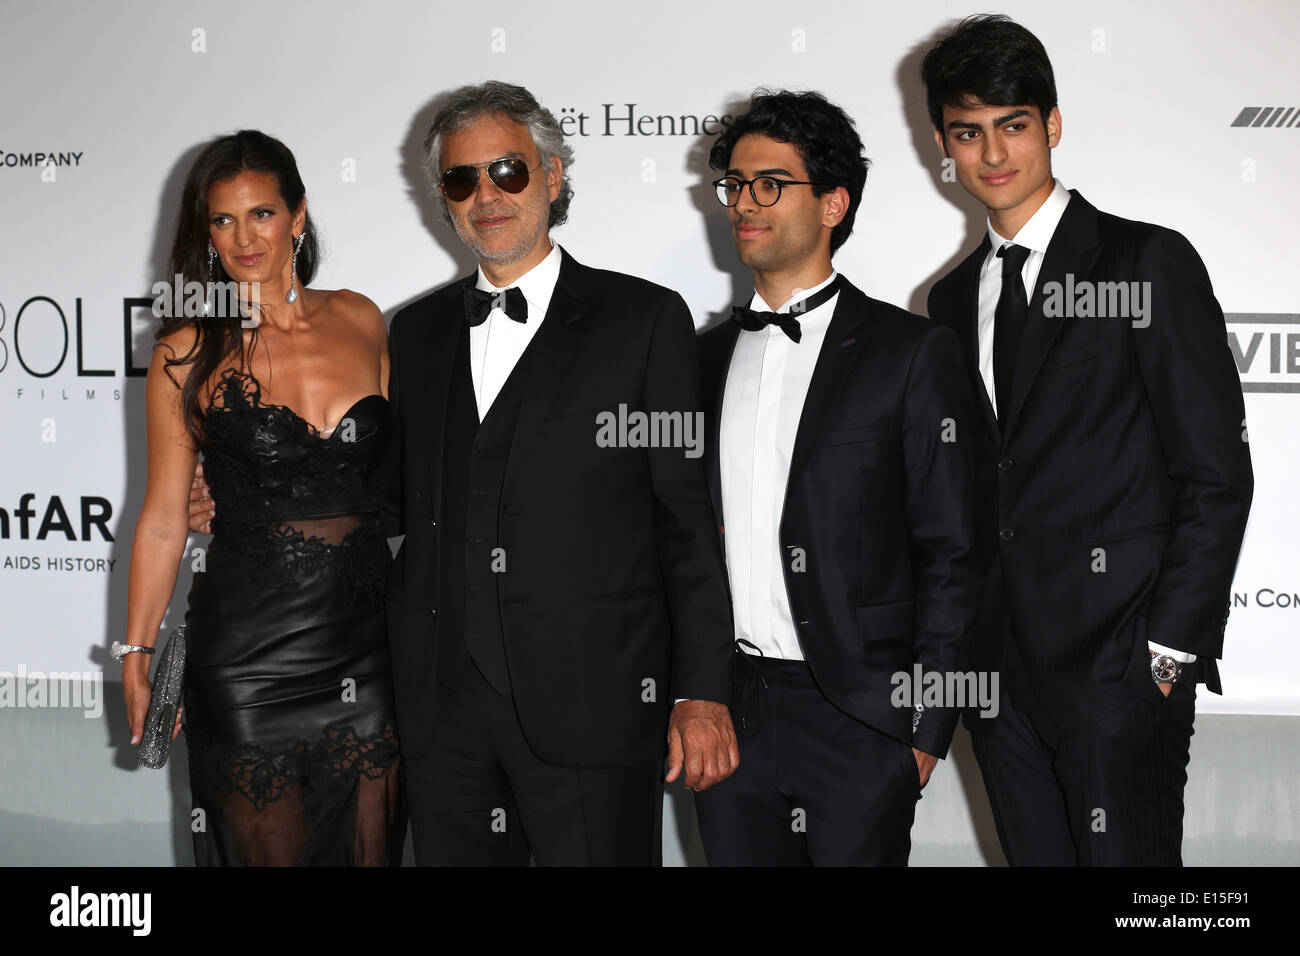 Cannes, France. 22nd May 2014. Veronica Berti (l-r), Andrea Bocelli, Amos Bocelli and Matteo Bocelli attend the Cinema Against AIDS amfAR gala 2014 held at the Hotel du Cap, Eden Roc in Cap d'Antibes, France, 22 May 2014, during the 67th annual Cannes Film Festival. Photo: Hubert Boesl/dpa NO WIRE SERVICE/Alamy Live News - Stock Image